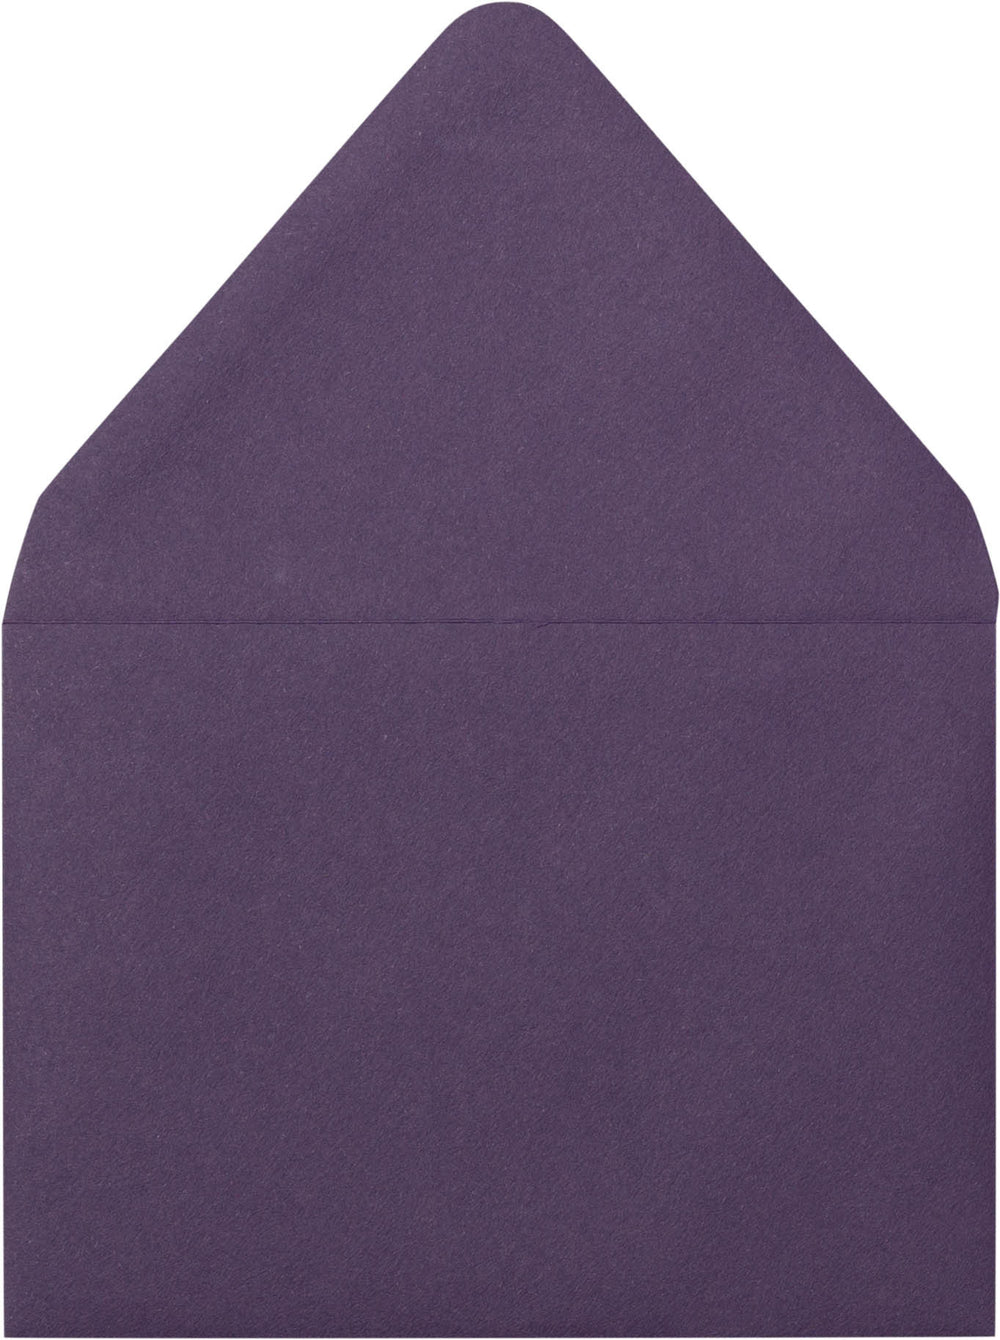 "A-2 Dark Purple Solid Euro Flap Envelopes (4 3/8"" x 5 3/4"")"